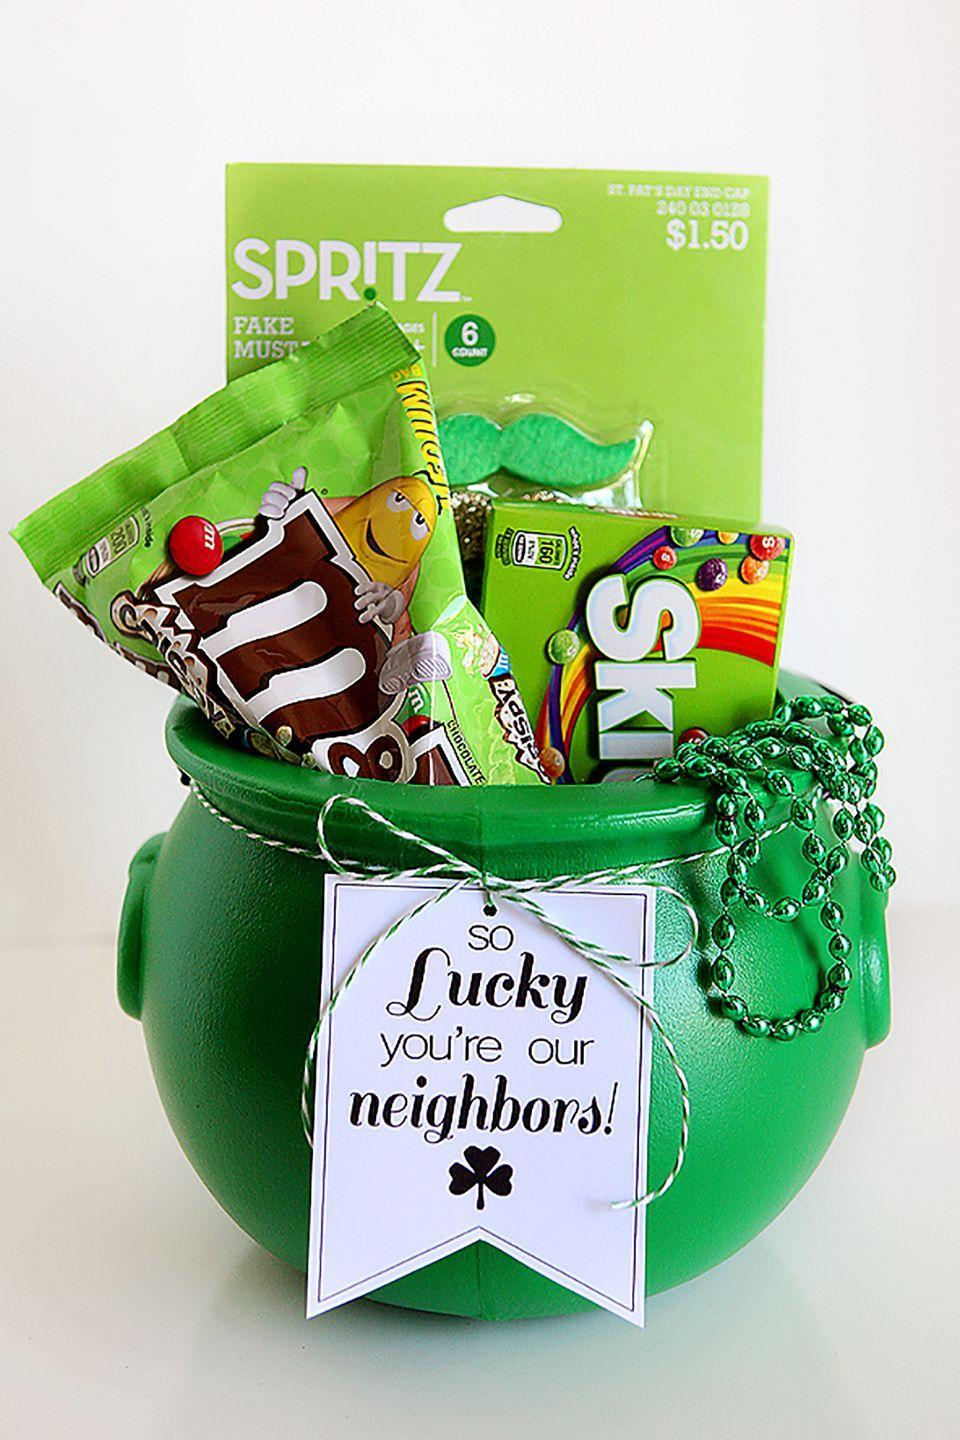 """<p>Leave your favorite neighbors with a pot o' treats!<br></p><p><strong>Get the tutorial from <a href=""""http://eighteen25.com/2015/03/so-lucky-st-patricks-day-tags/"""" rel=""""nofollow noopener"""" target=""""_blank"""" data-ylk=""""slk:Eighteen25"""" class=""""link rapid-noclick-resp"""">Eighteen25</a>. </strong></p>"""